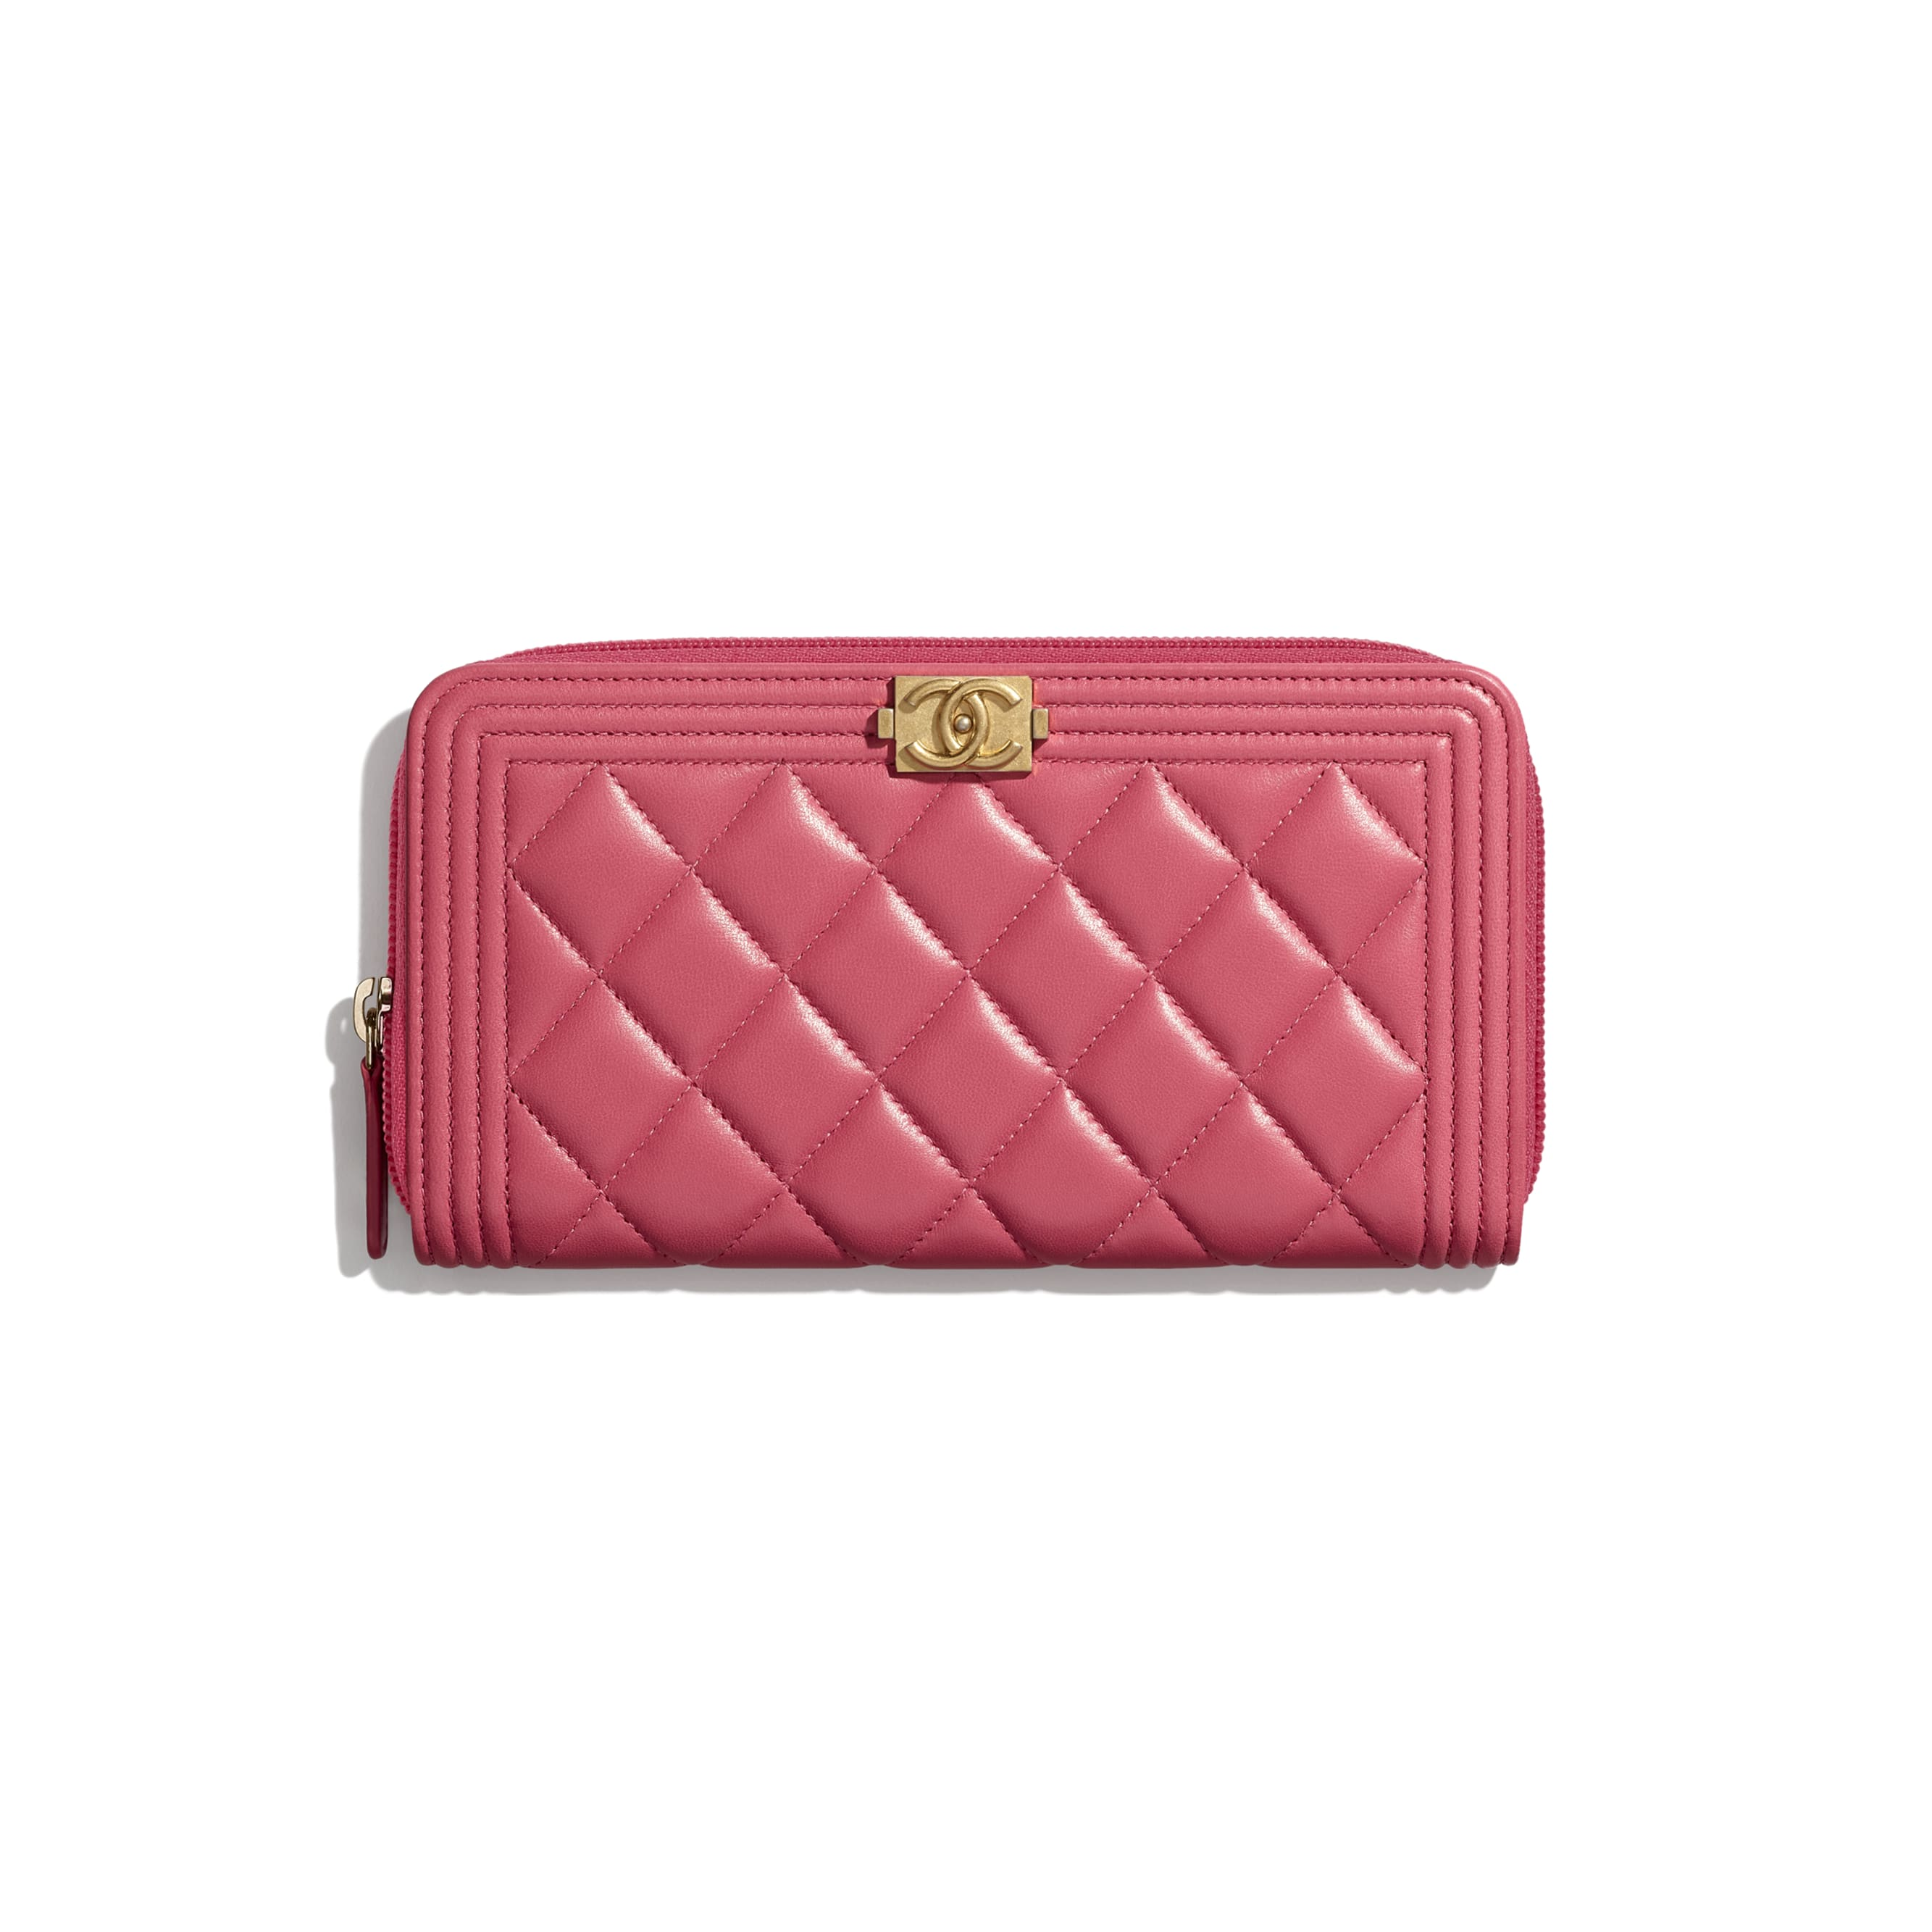 BOY CHANEL Long Zipped Wallet - Pink - Lambskin & Gold-Tone Metal - CHANEL - Default view - see standard sized version